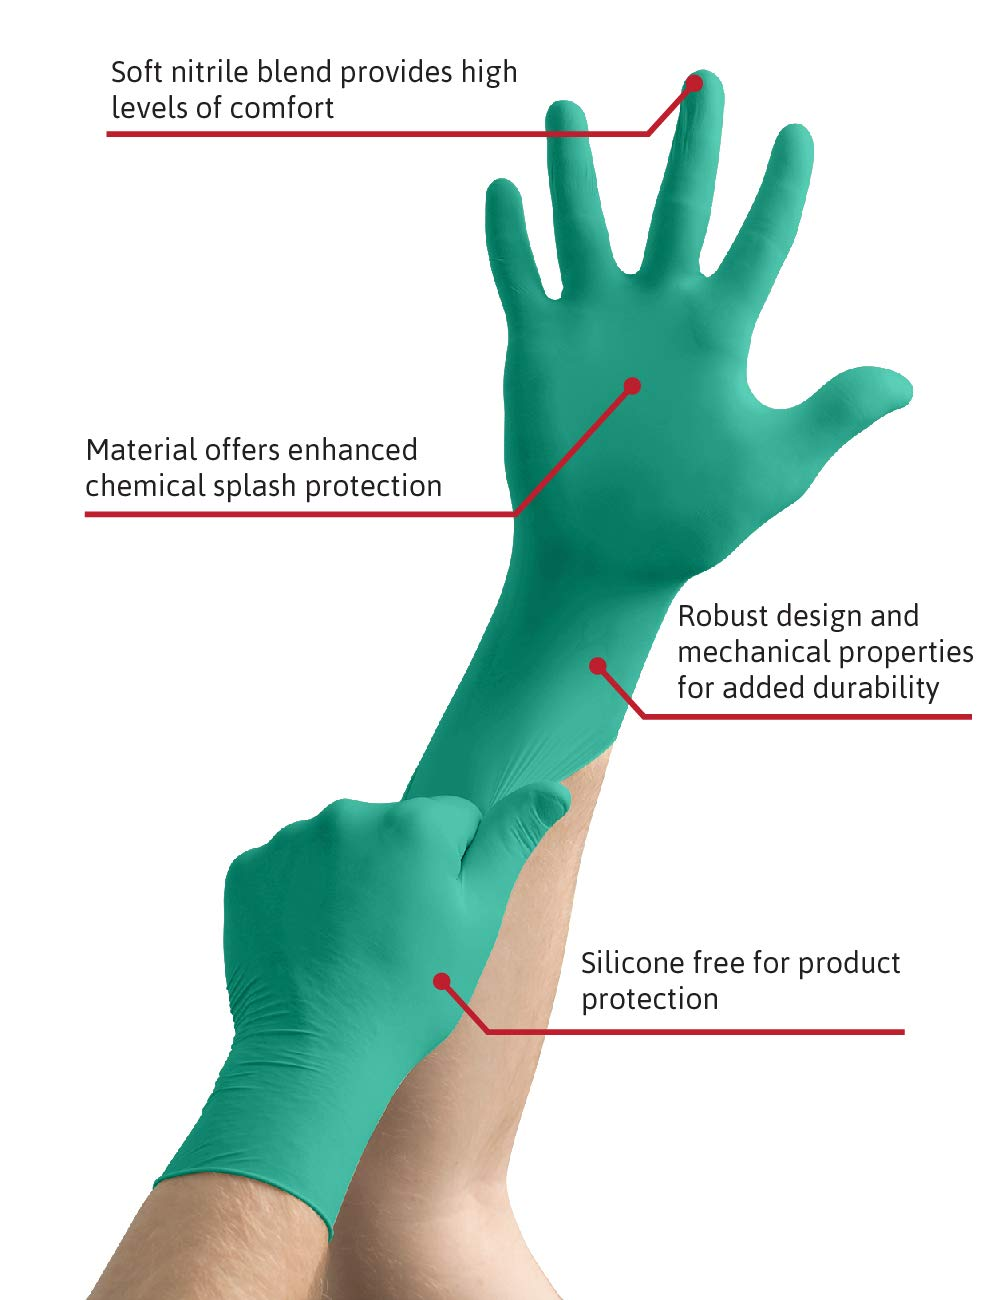 Ansell TouchNTuff 92-600 Nitrile Lightweight Glove with Beaded Cuff, Chemical/Splash Resistance, Powder Free, 4.7mil Thickness, 240mm Length, Size 8, Green (Box of 100) by Ansell (Image #2)